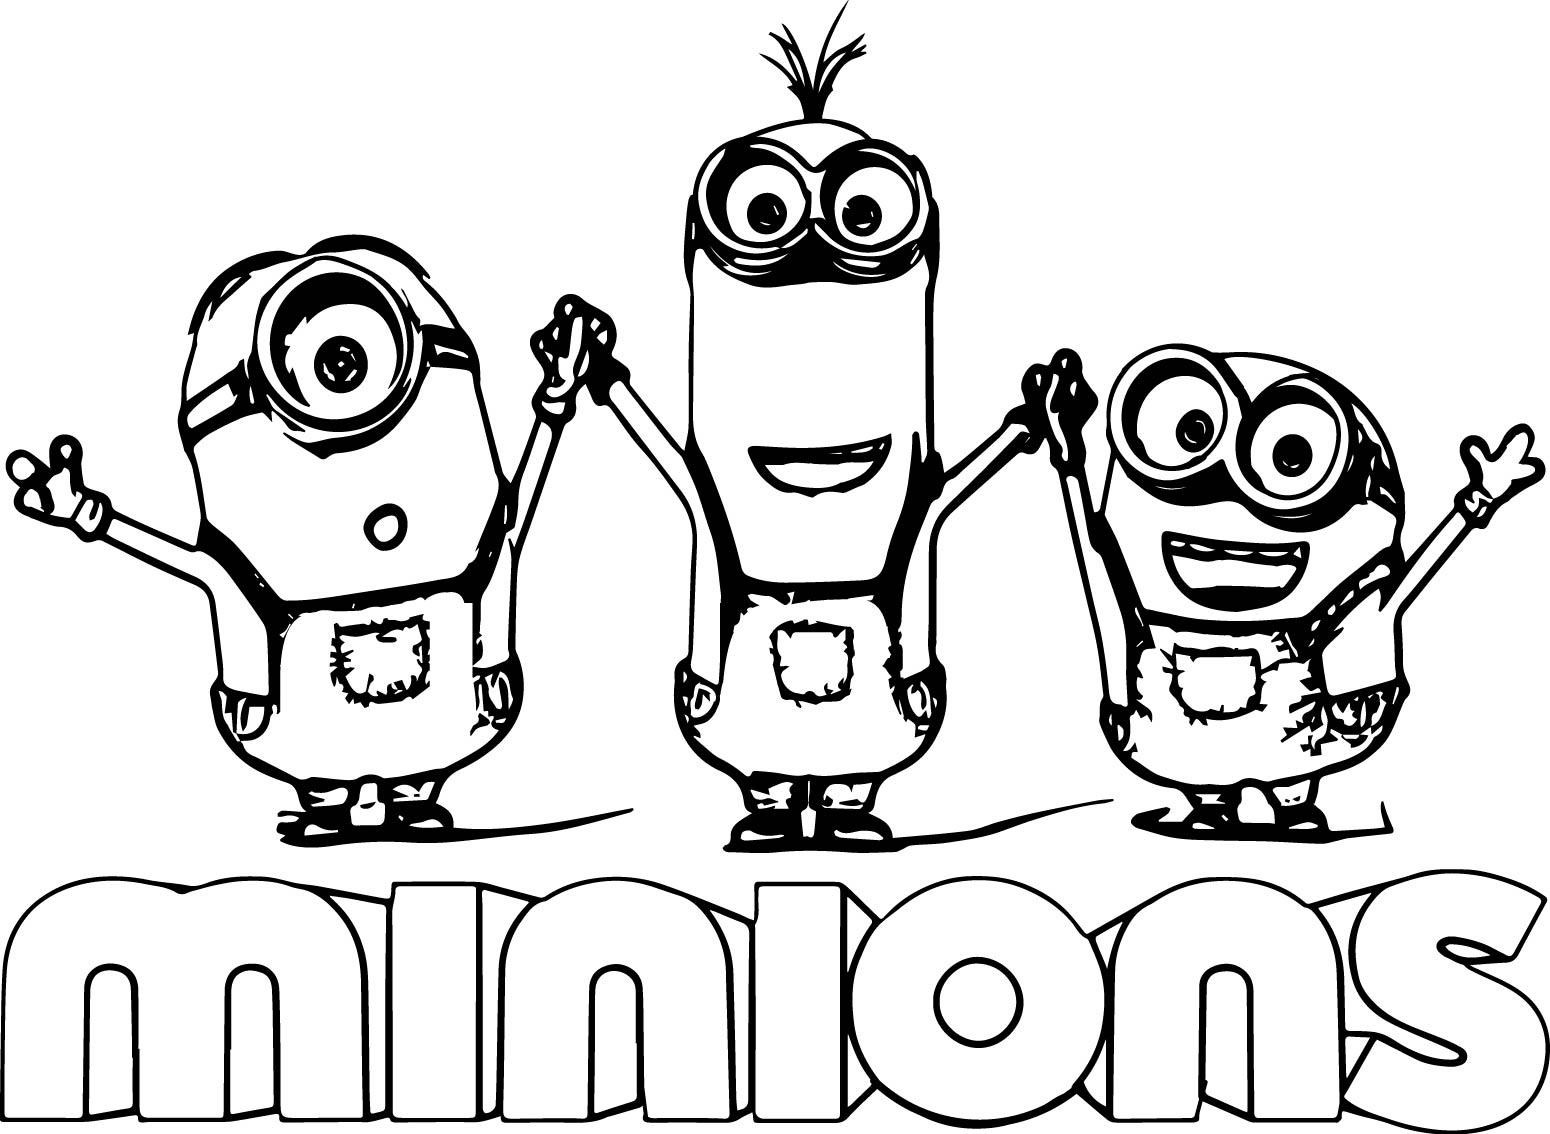 Minion-Text-Minions-Backyard-Bash-Coloring-Page